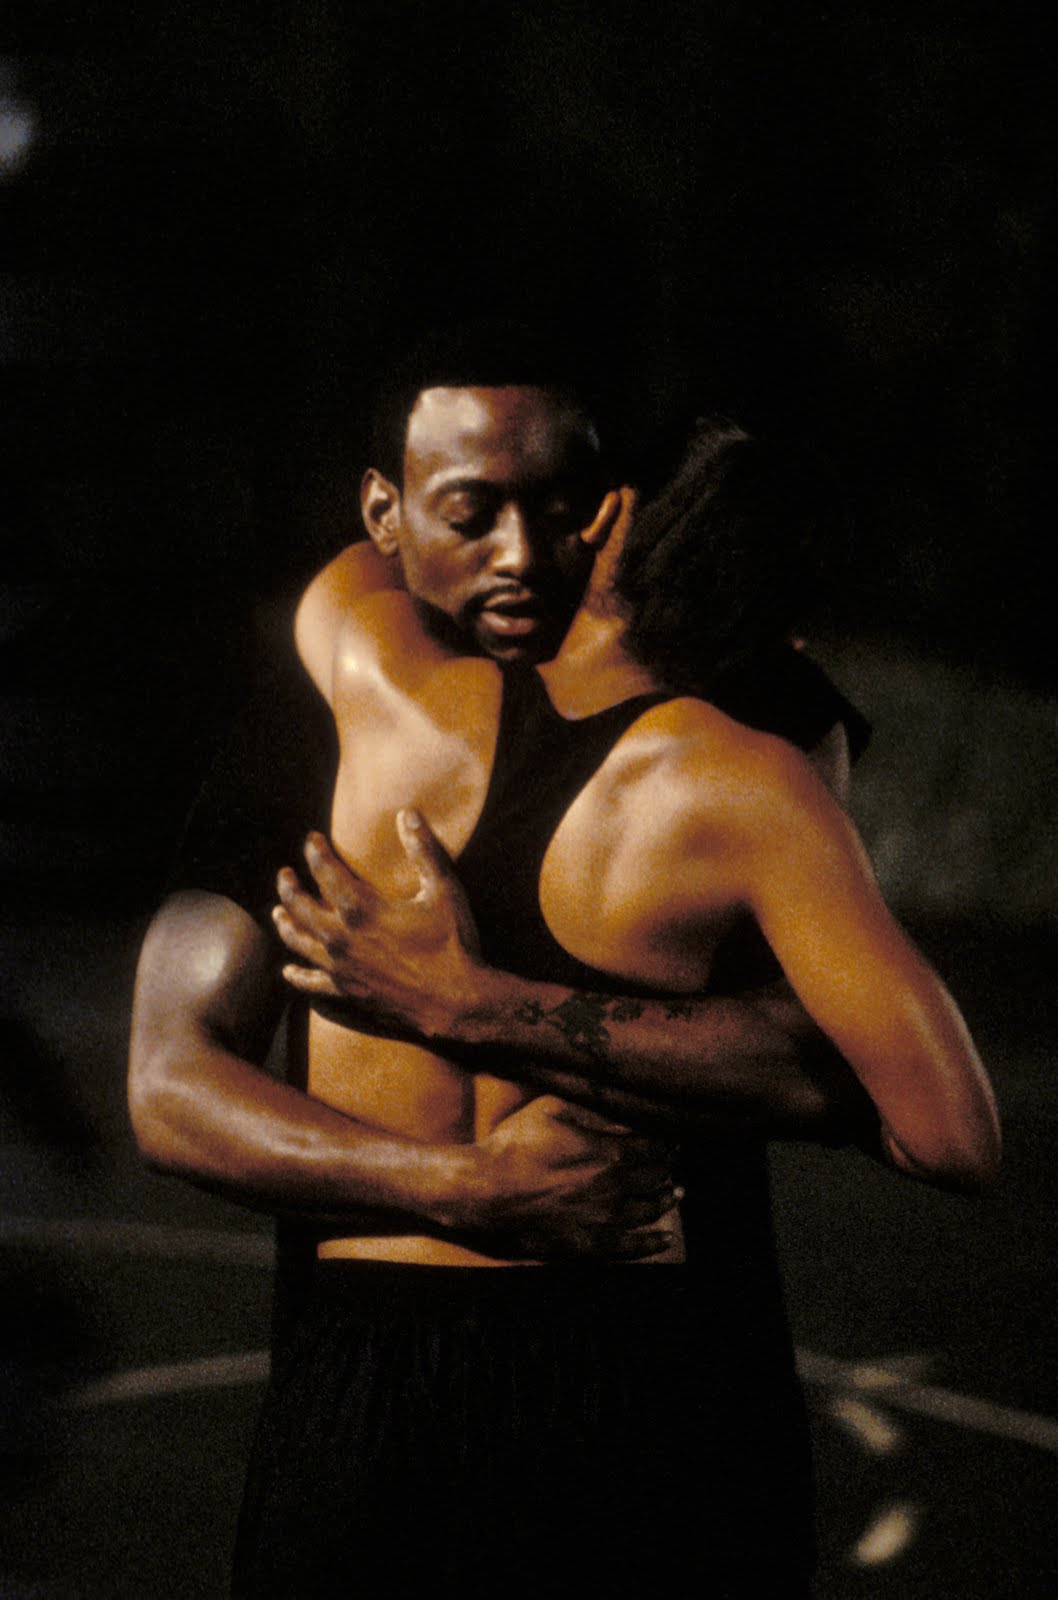 a plot overview of the movie love and basketball A summary of the plot is that it starts off in 1981 in l a , monica moves in next door to quincy they're 11, and both want to play in the nba they develop a love-hate relationship that continues into high school, with monica's edge and quincy's top-dog attitude eventually separating them.